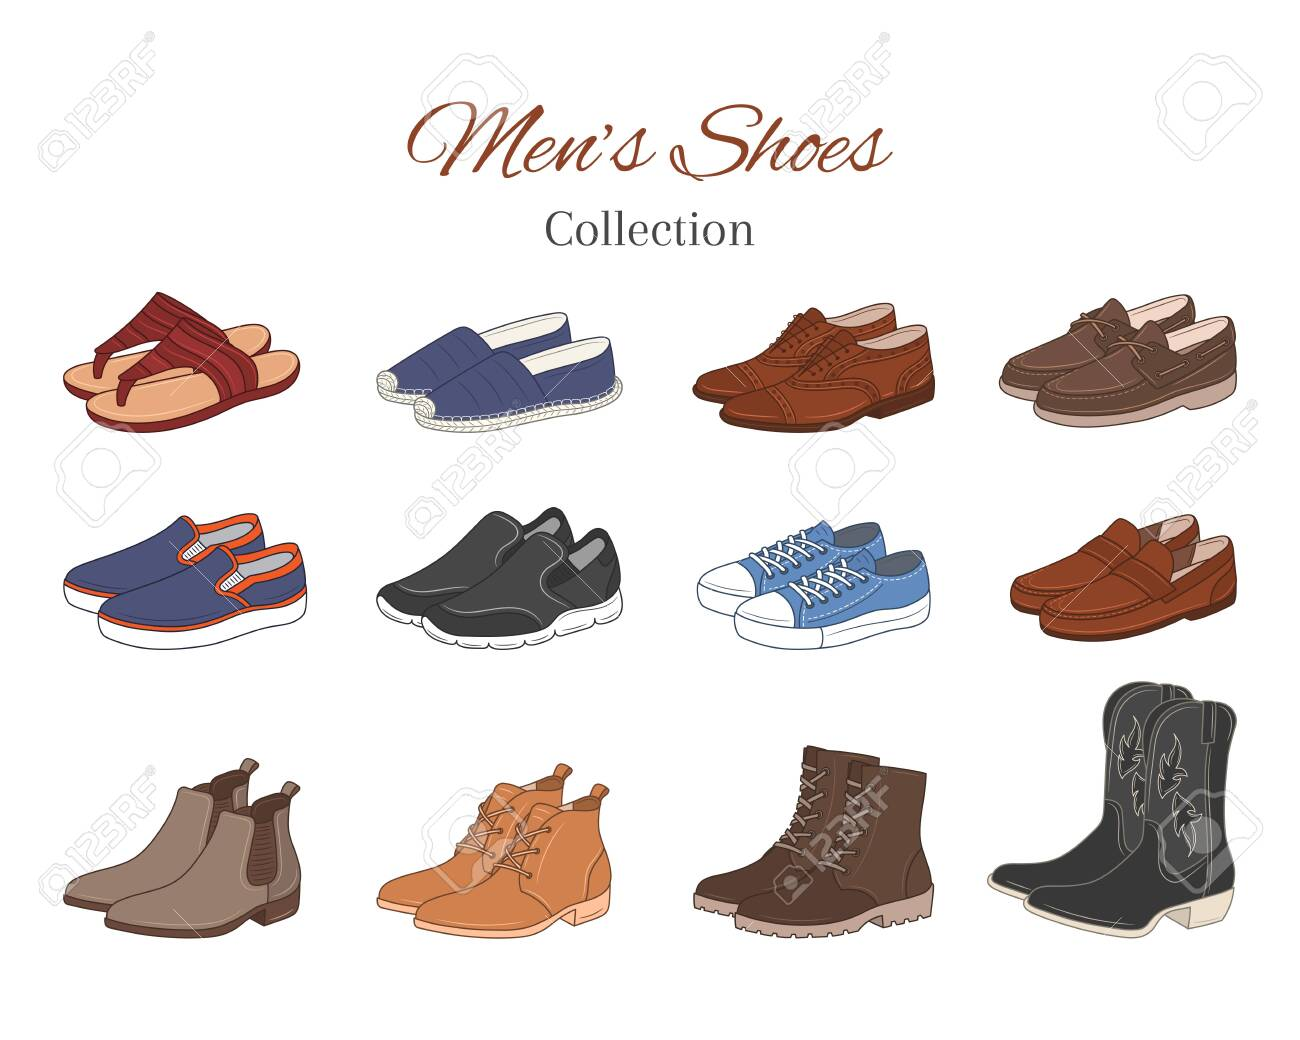 Men S Shoes Collection Various Types Of Male Shoes Casual Boots Royalty Free Cliparts Vectors And Stock Illustration Image 135213122